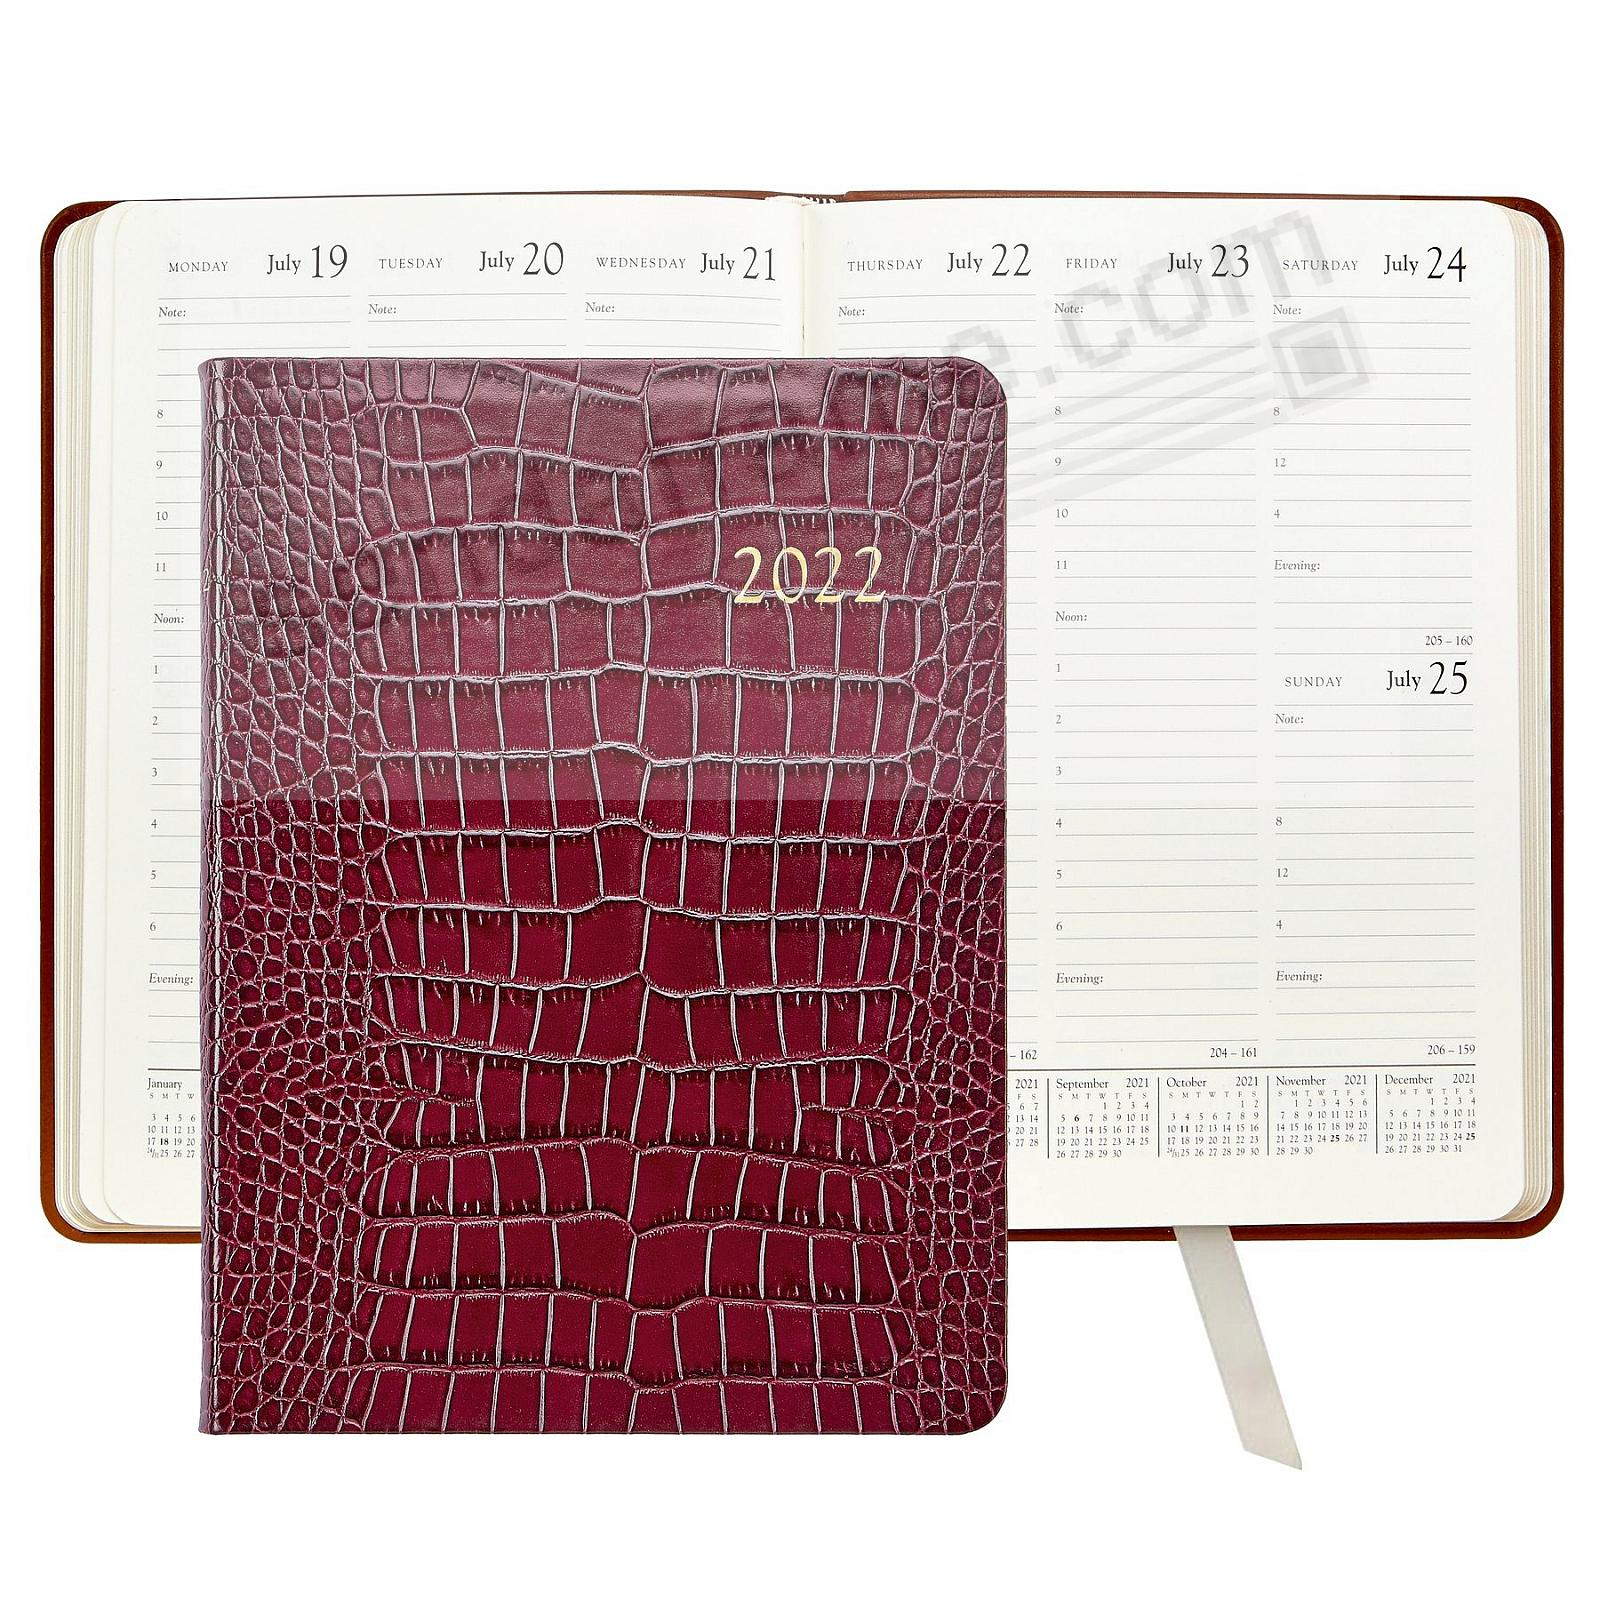 2020 Desk Diary 9inch COGNAC CROCODILE EMBOSSED Leather by Graphic Image™